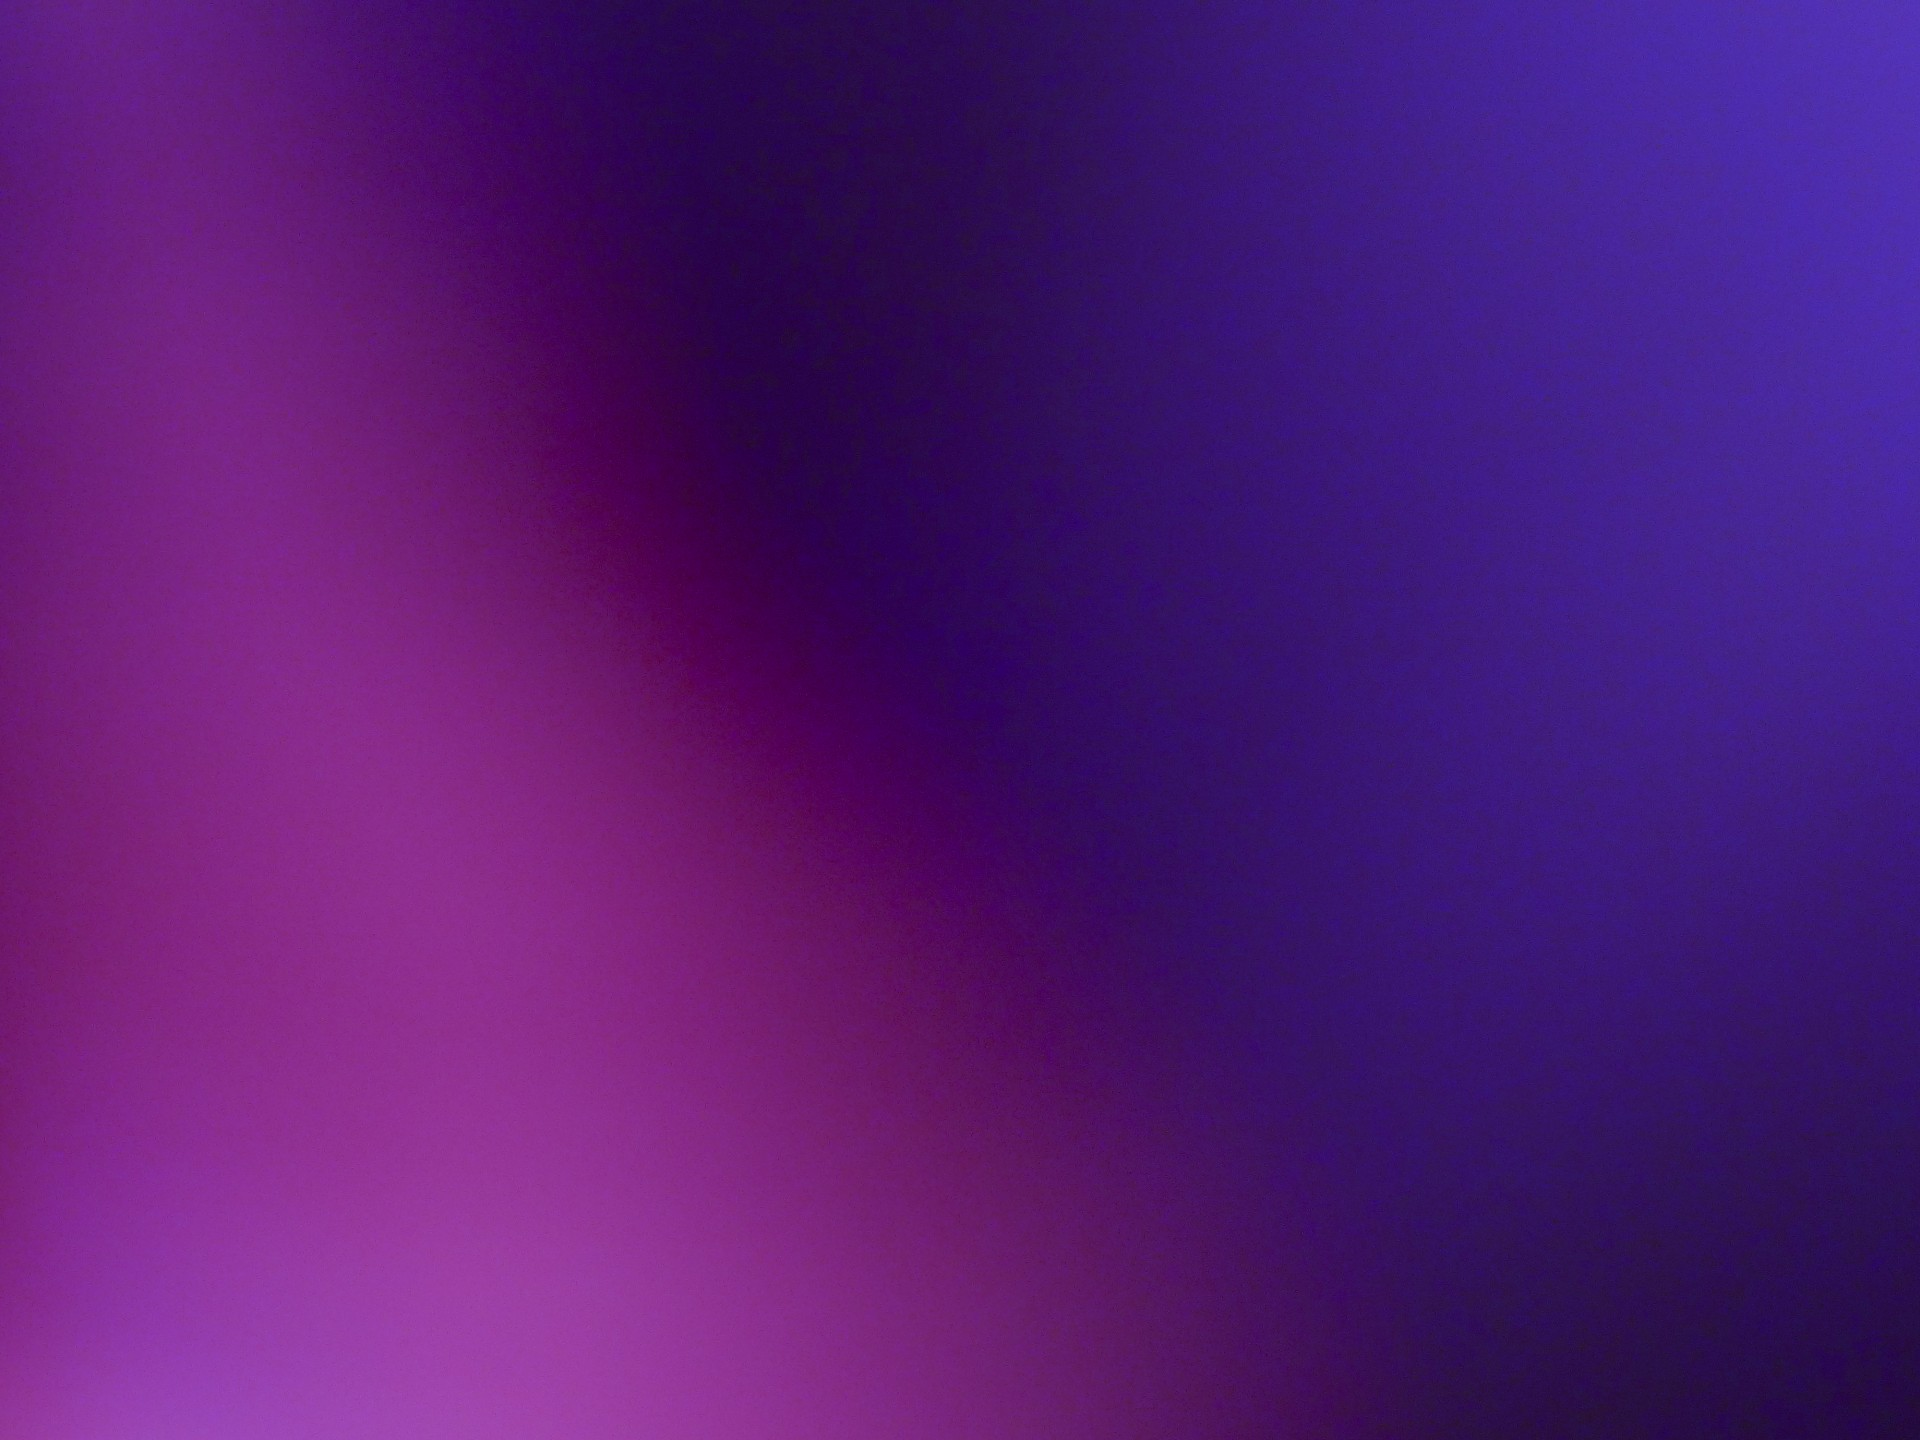 Purple And Pink Background Free Stock Photo  Public